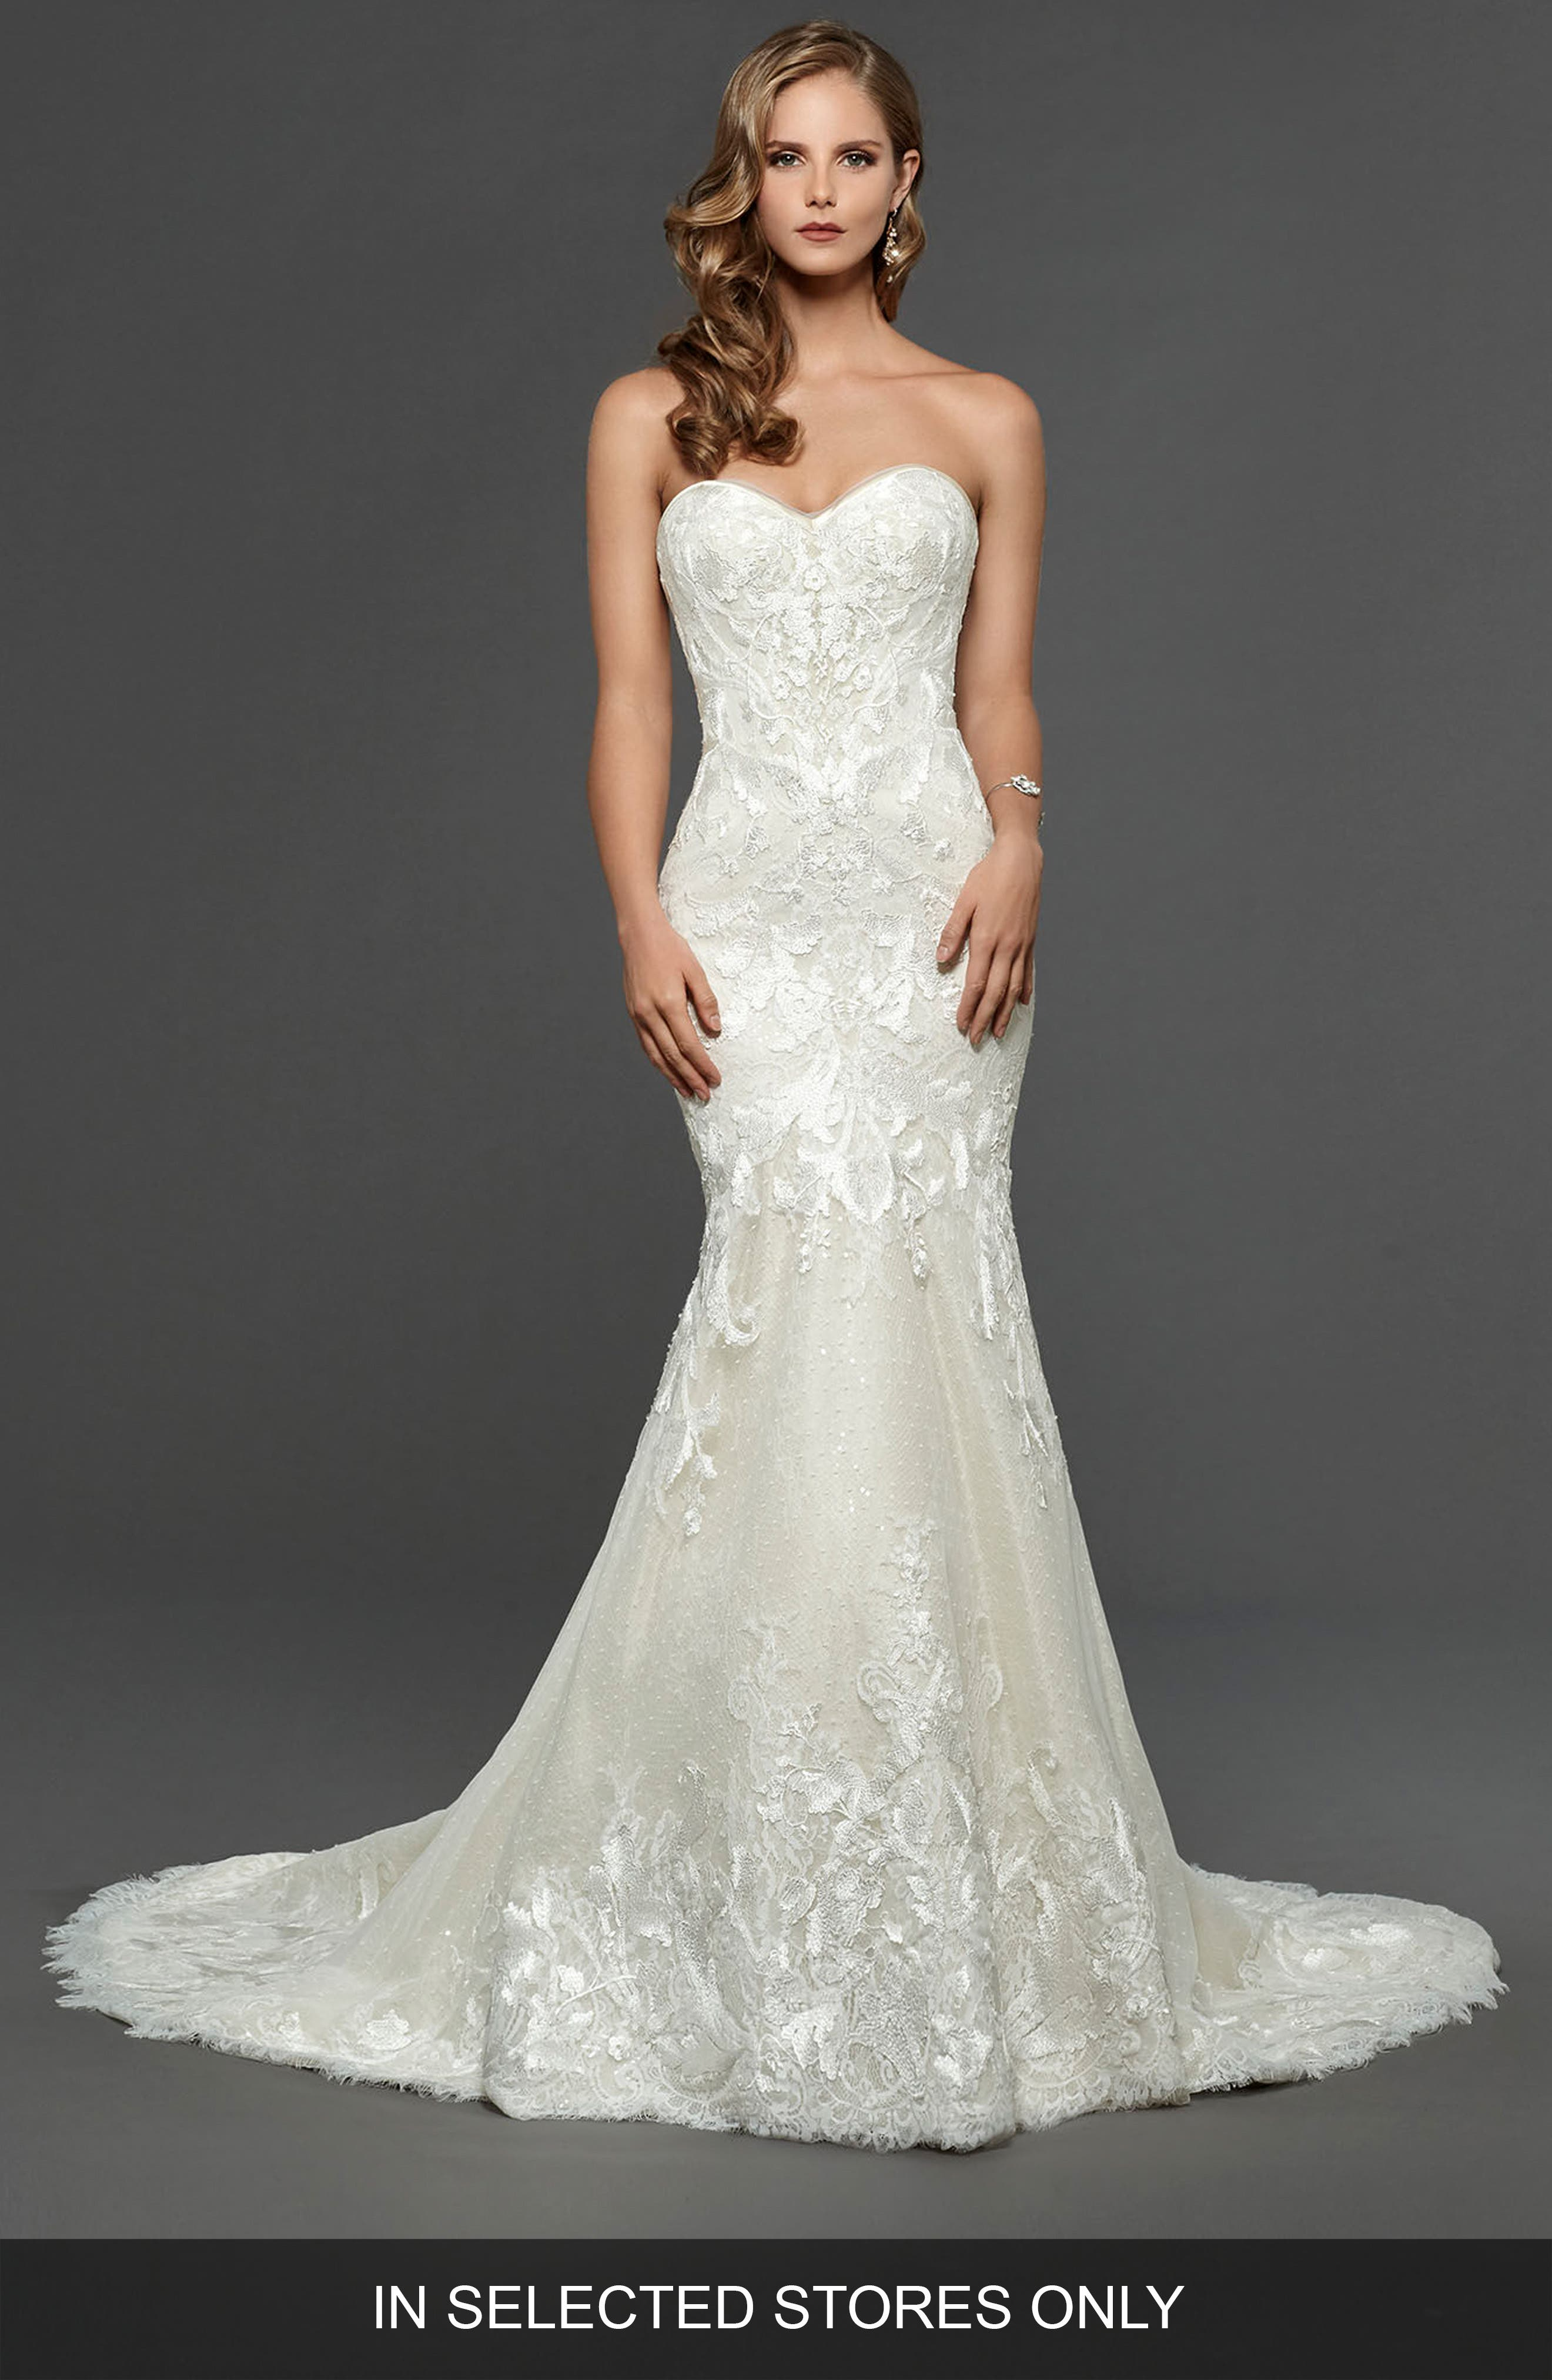 Claire Strapless Sweetheart Trumpet Gown,                         Main,                         color, Off White